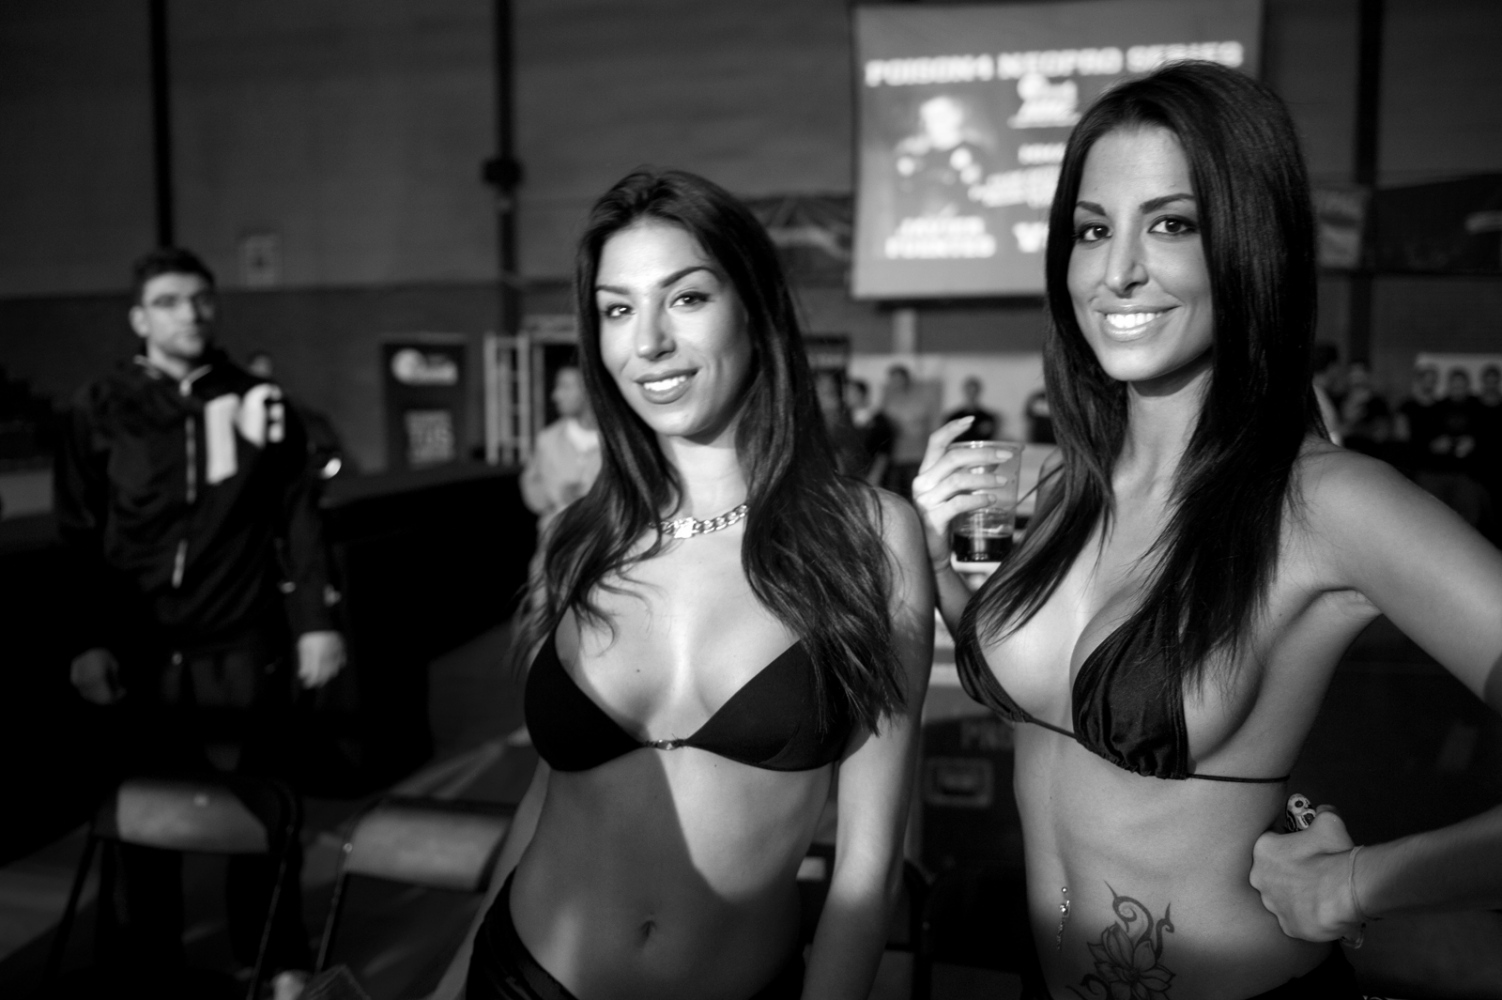 As in boxing there are ring hostesses to show the number of round, often they acclaimed and extolled by the public.